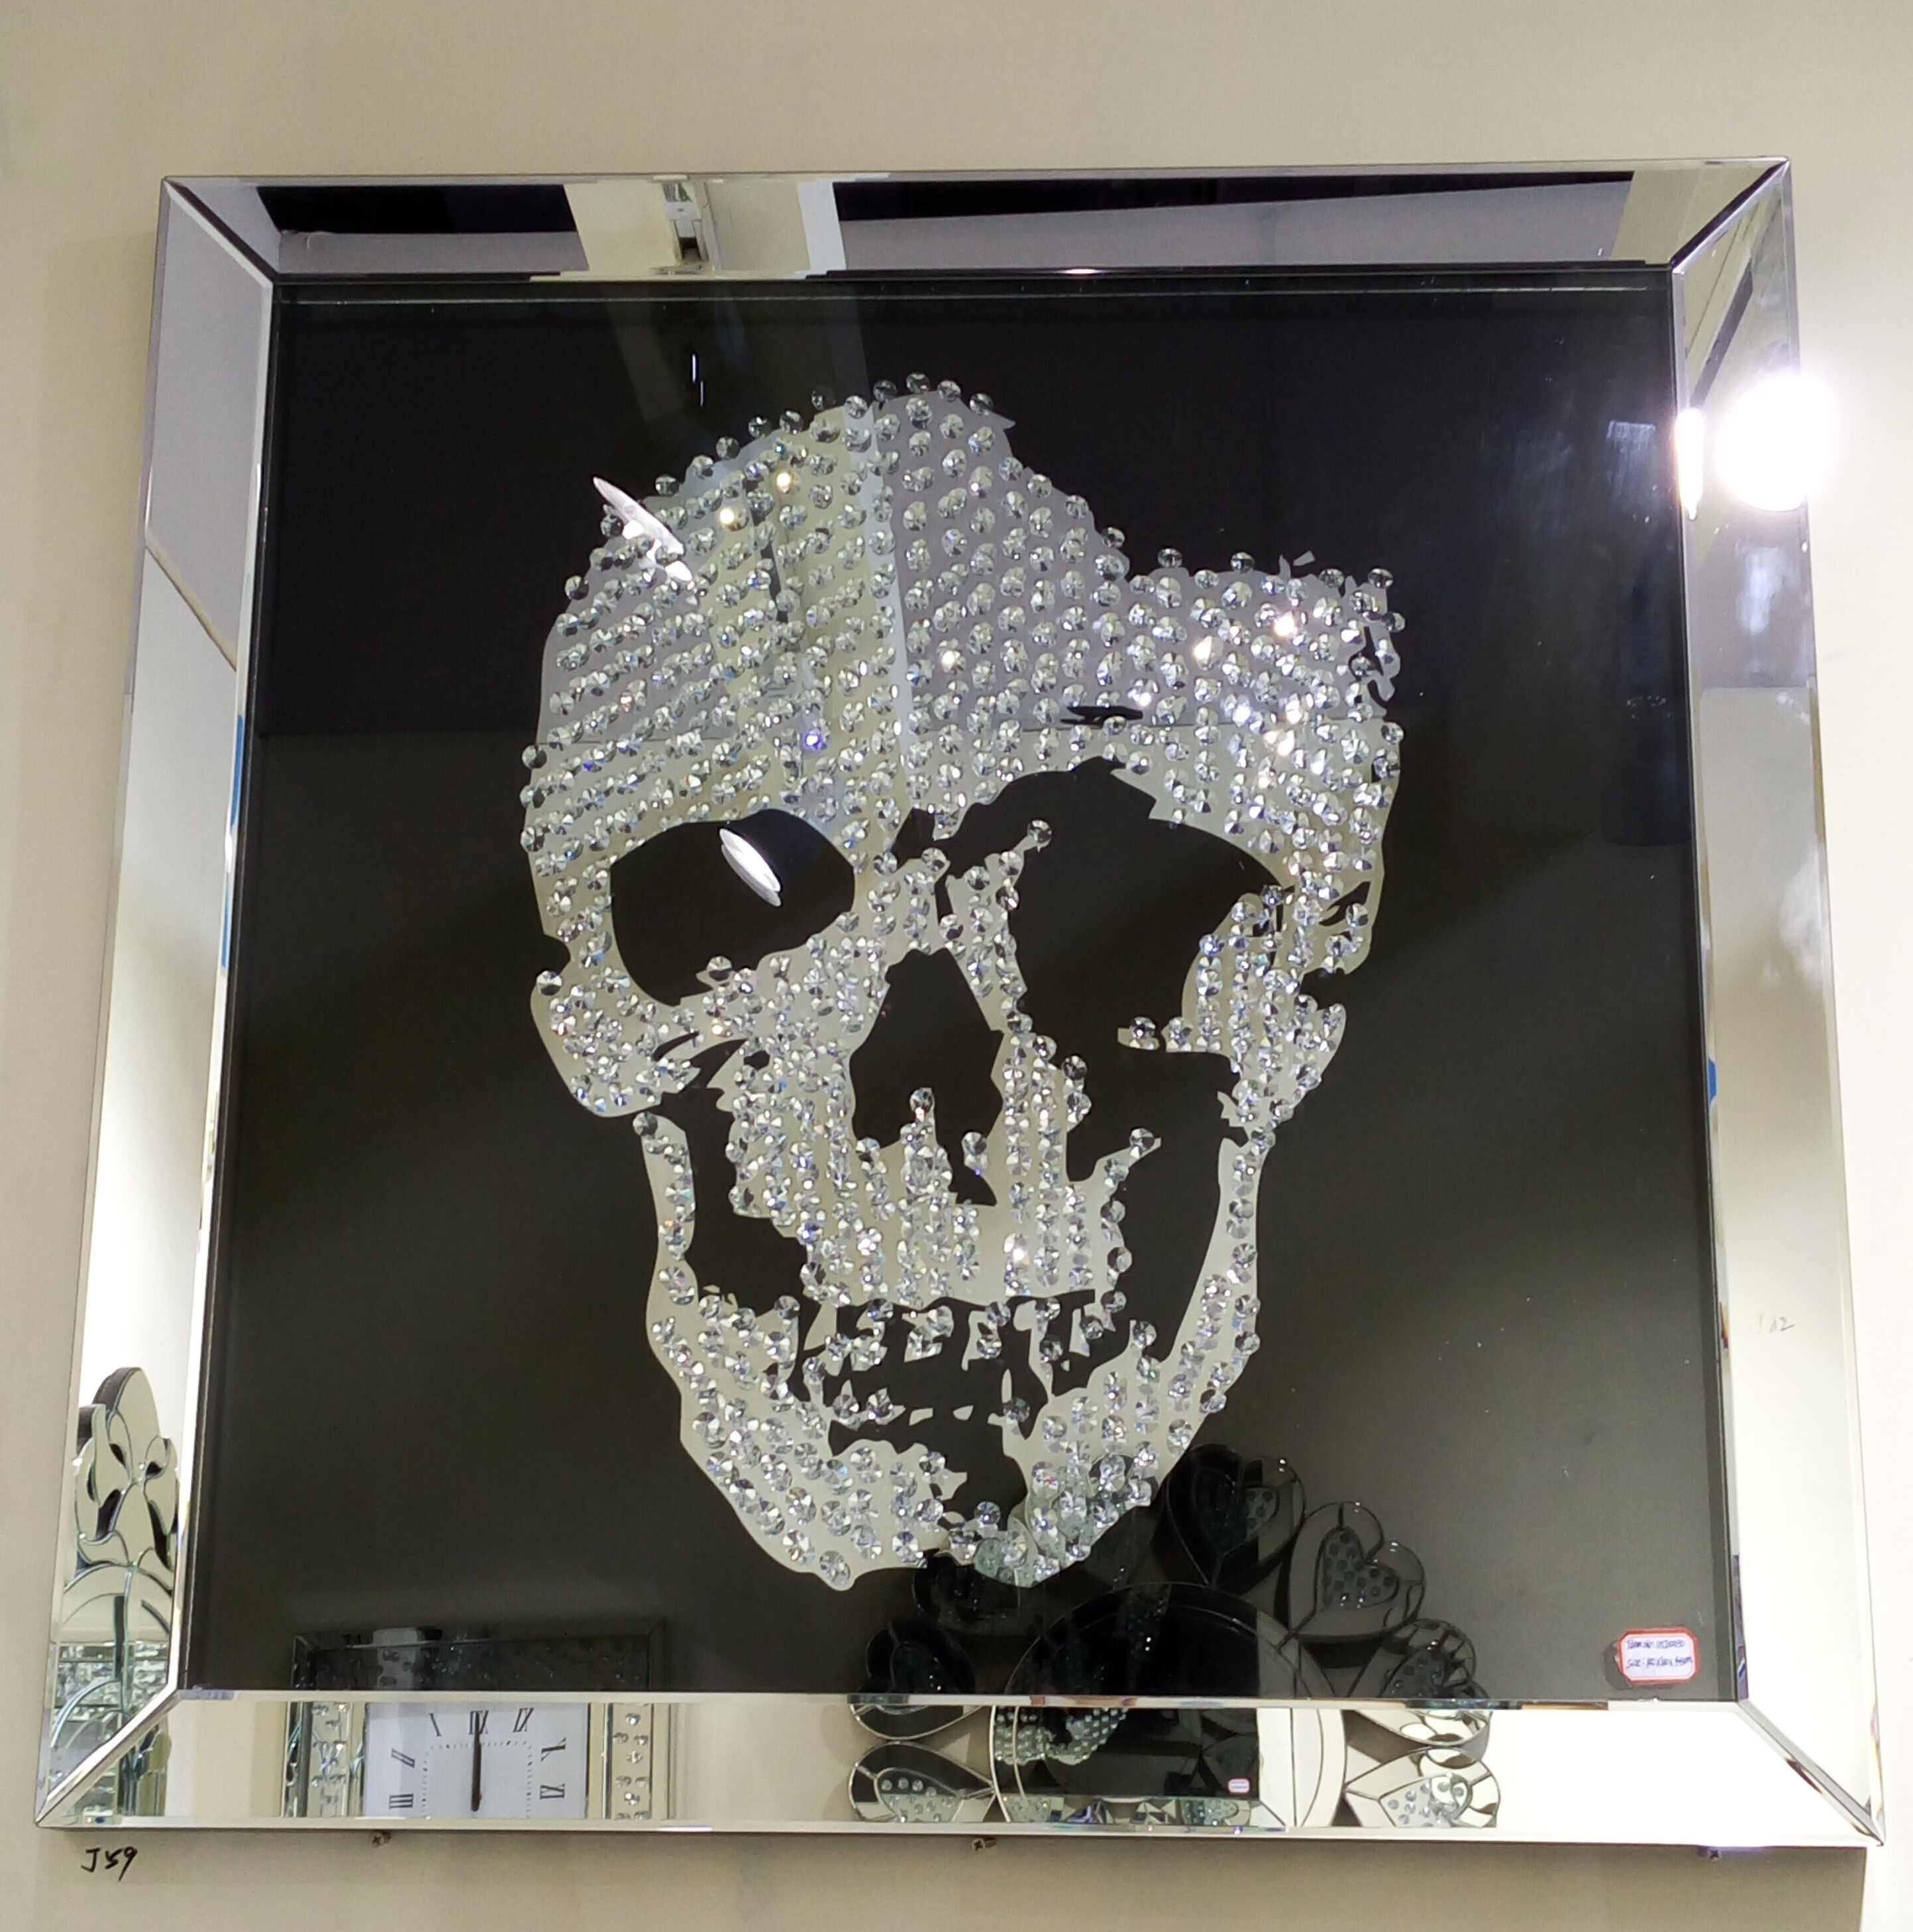 Crystal Mirror Wall Art Crystal Mirror Wall Art swarovski crystal skull wall art with a silver mirrored frame and 2888 X 2916